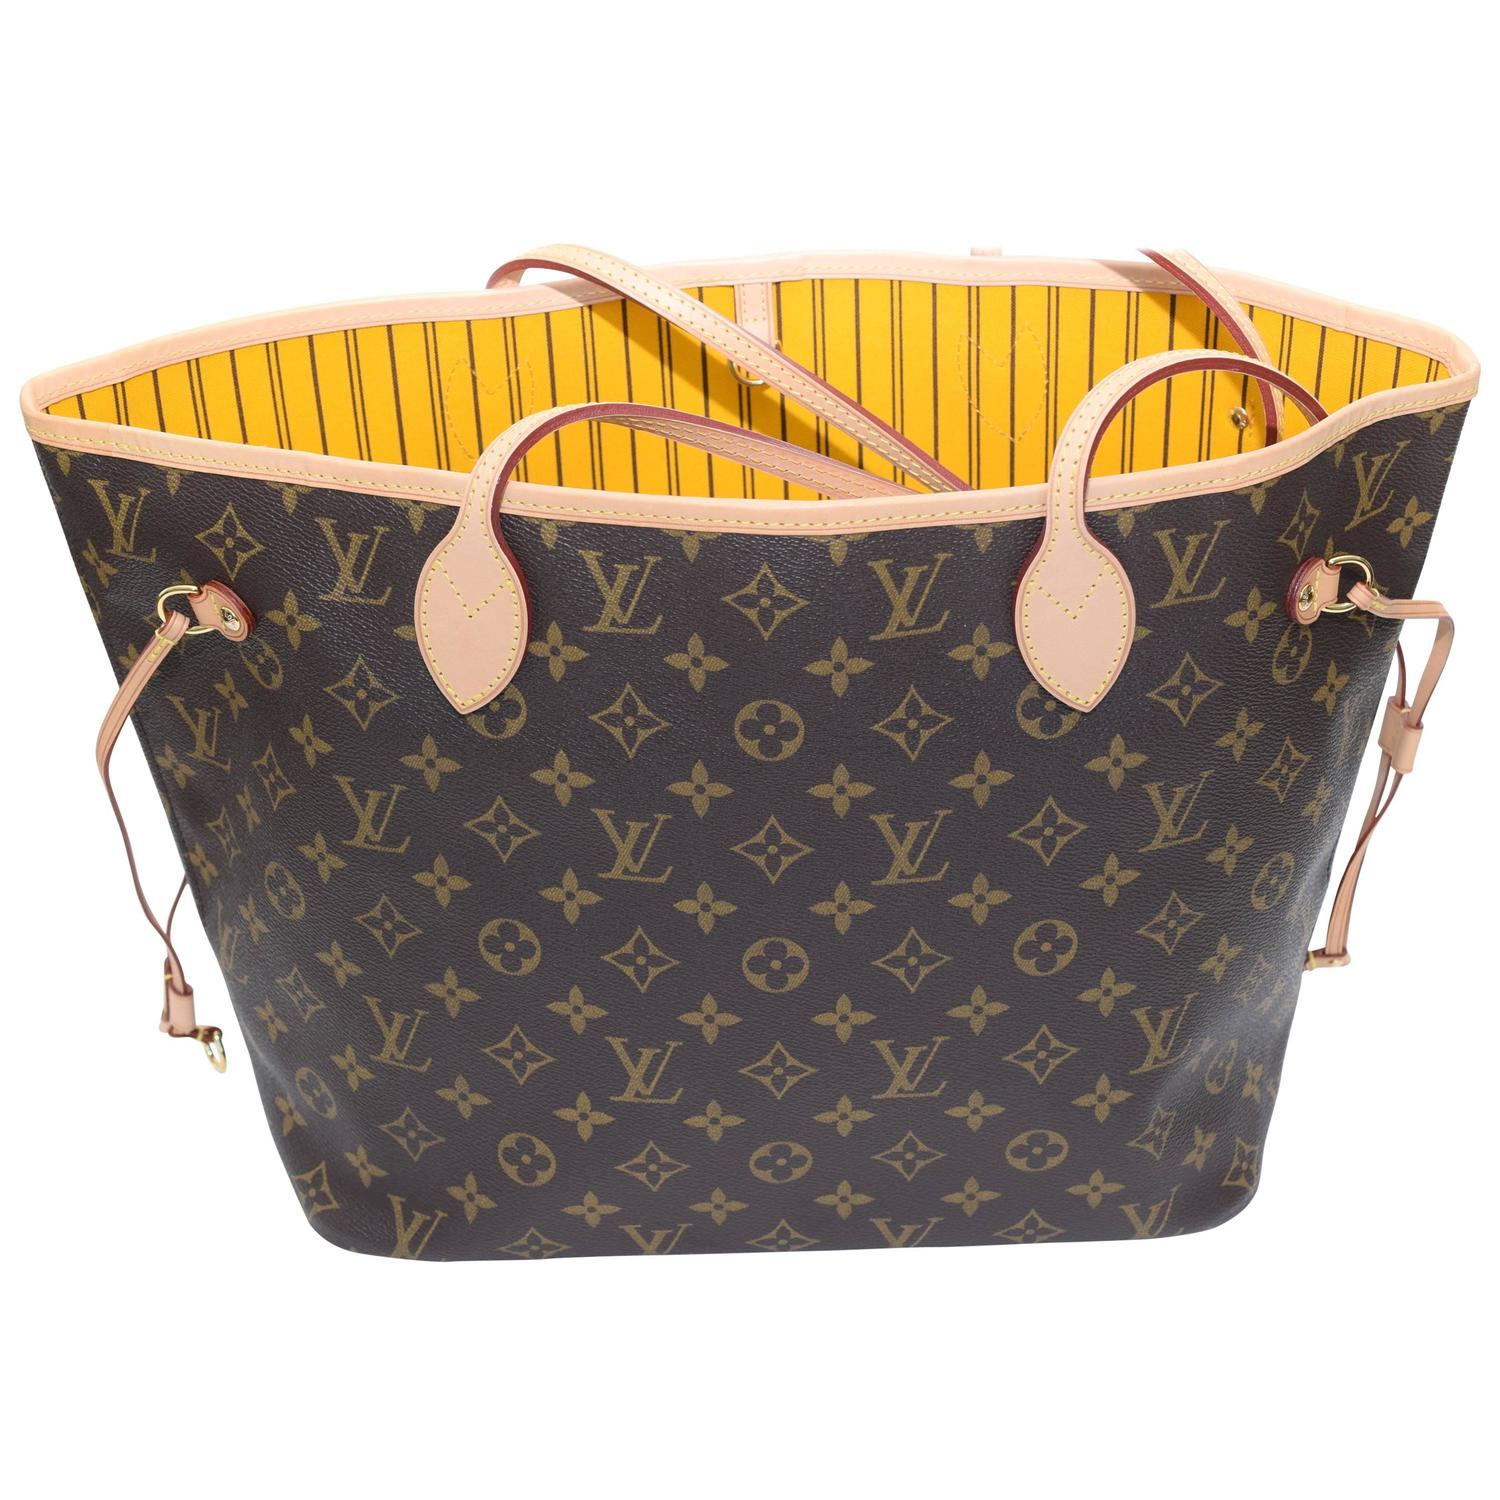 Louis Vuitton Neverfull Mm In Monogram W Mimosa Lining At 1stdibs